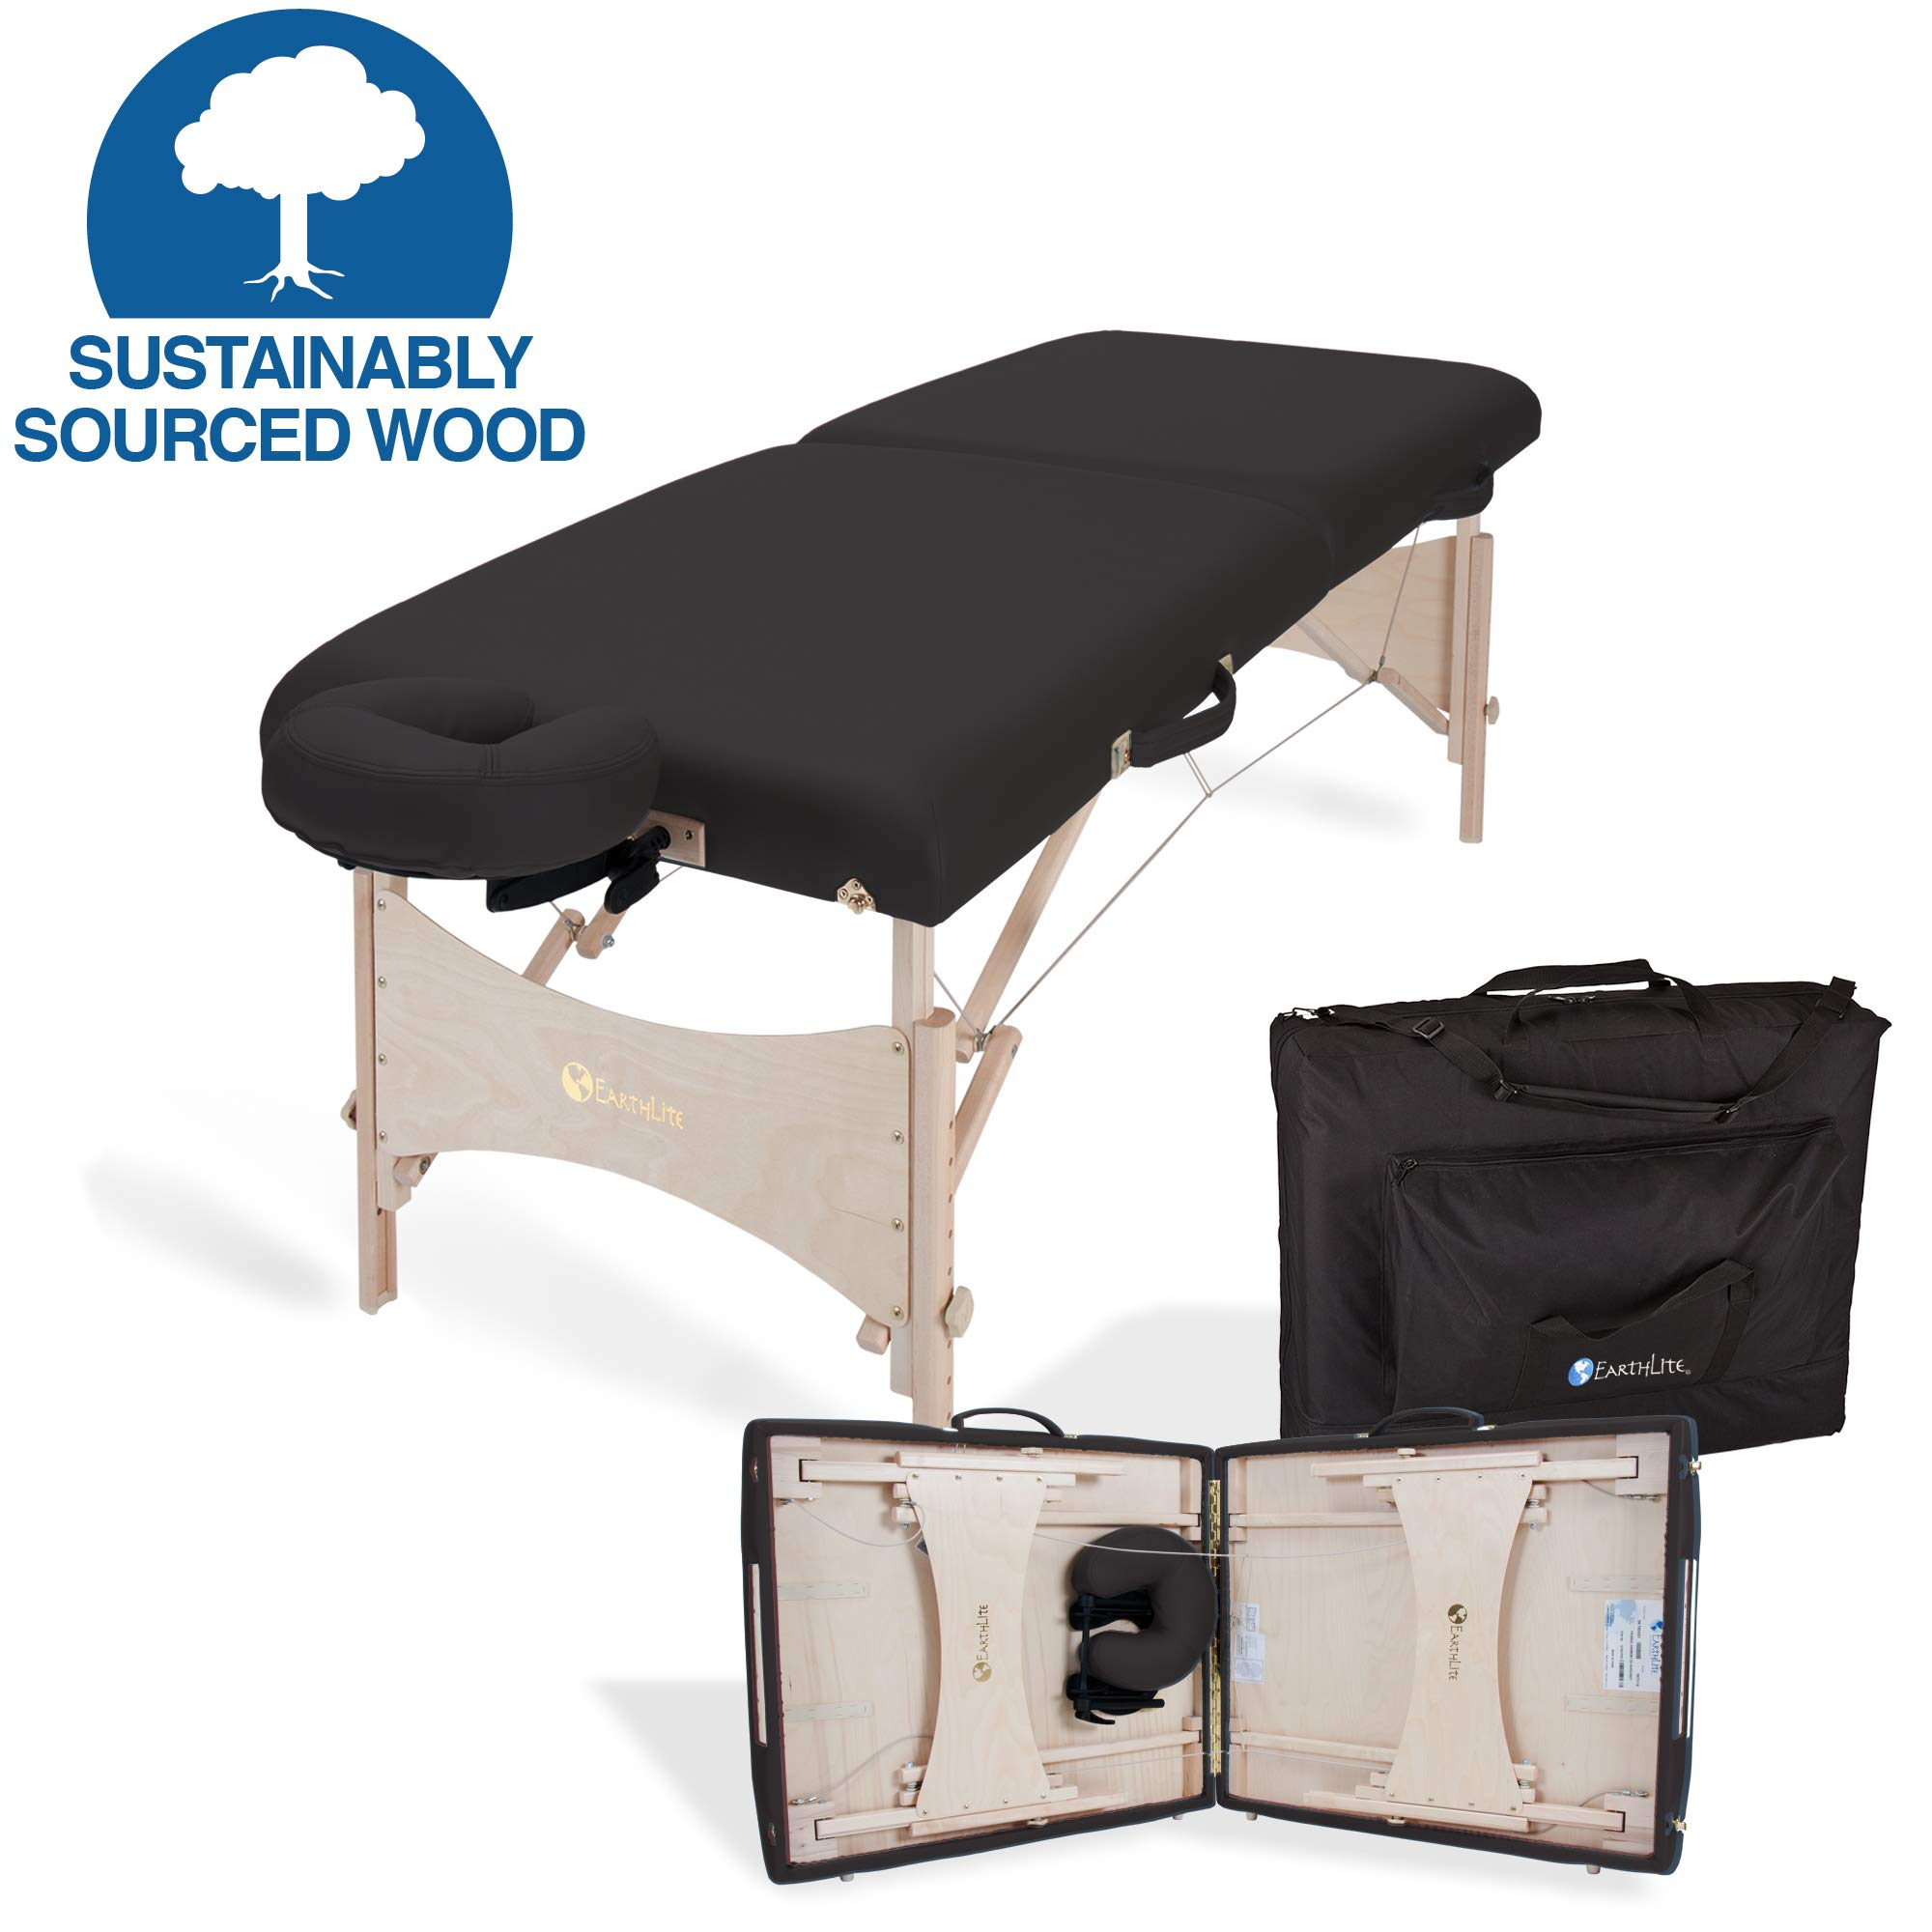 EARTHLITE Portable Massage Table HARMONY DX - Eco-Friendly Design, Hard Maple, Superior Comfort, Deluxe Adjustable Face Cradle, Heavy-Duty Carry Case (30'' x 73''), Black by EARTHLITE